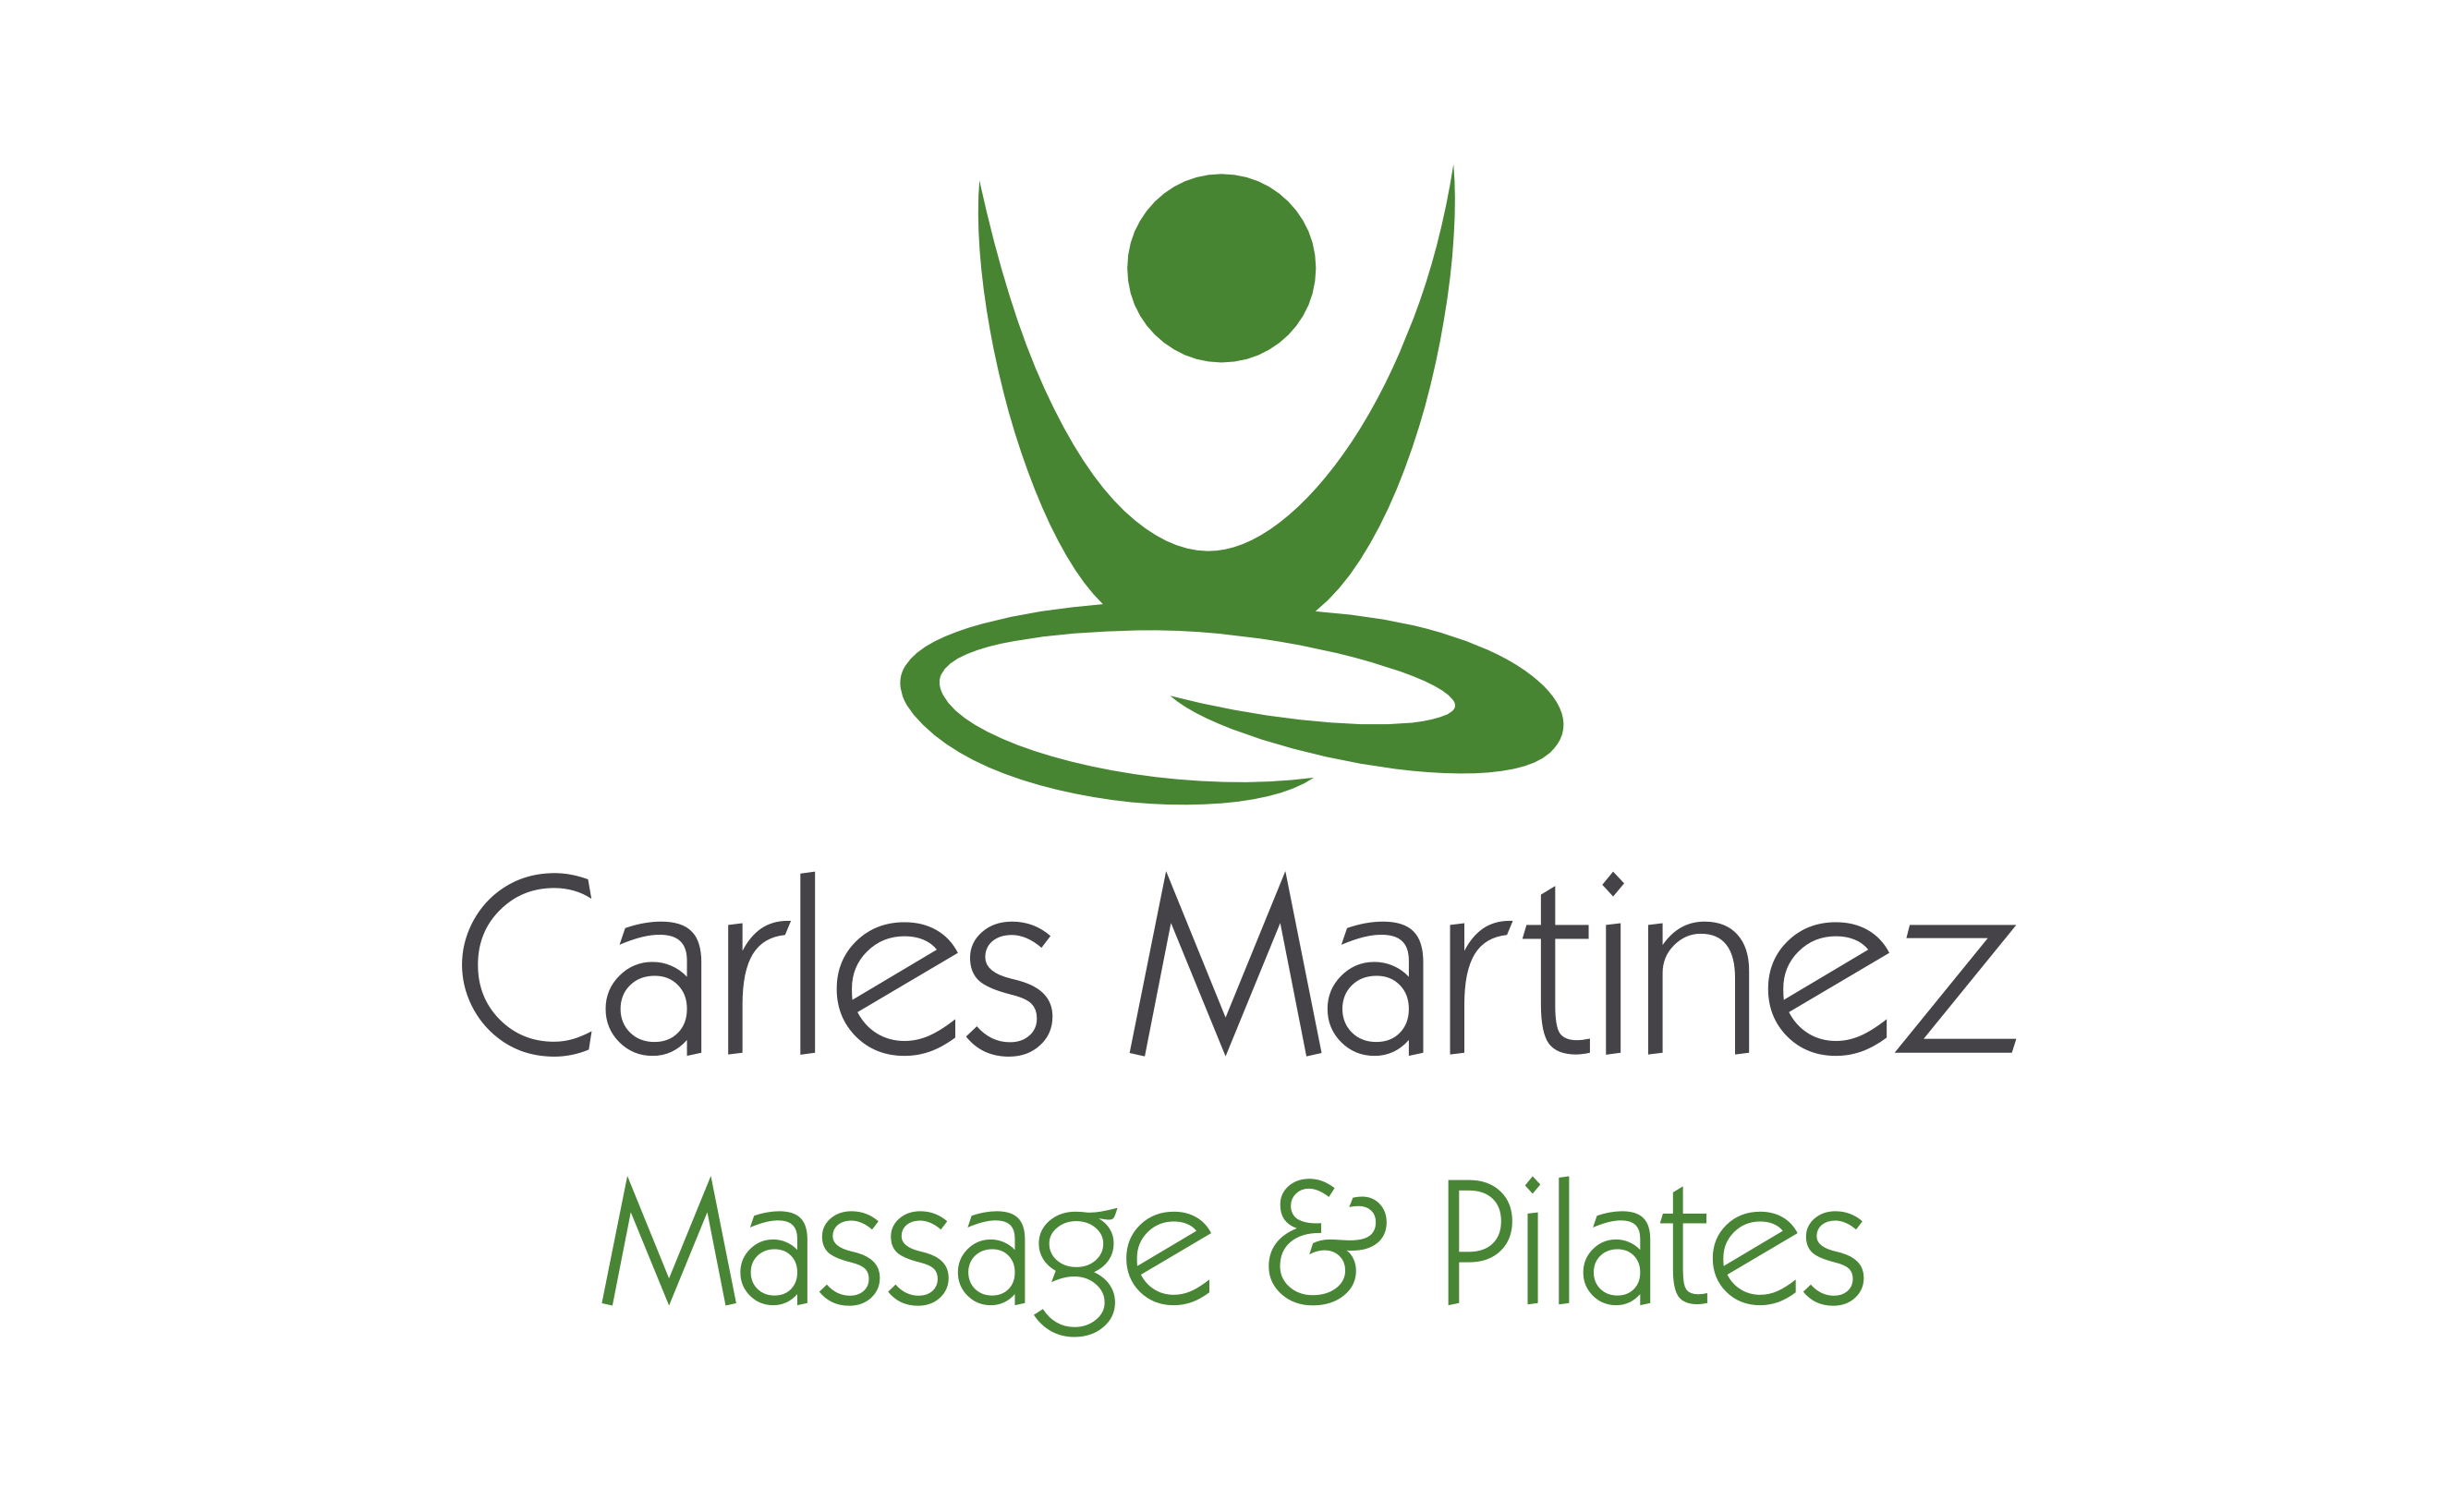 Carles Martinez Massage & Pilates company logo